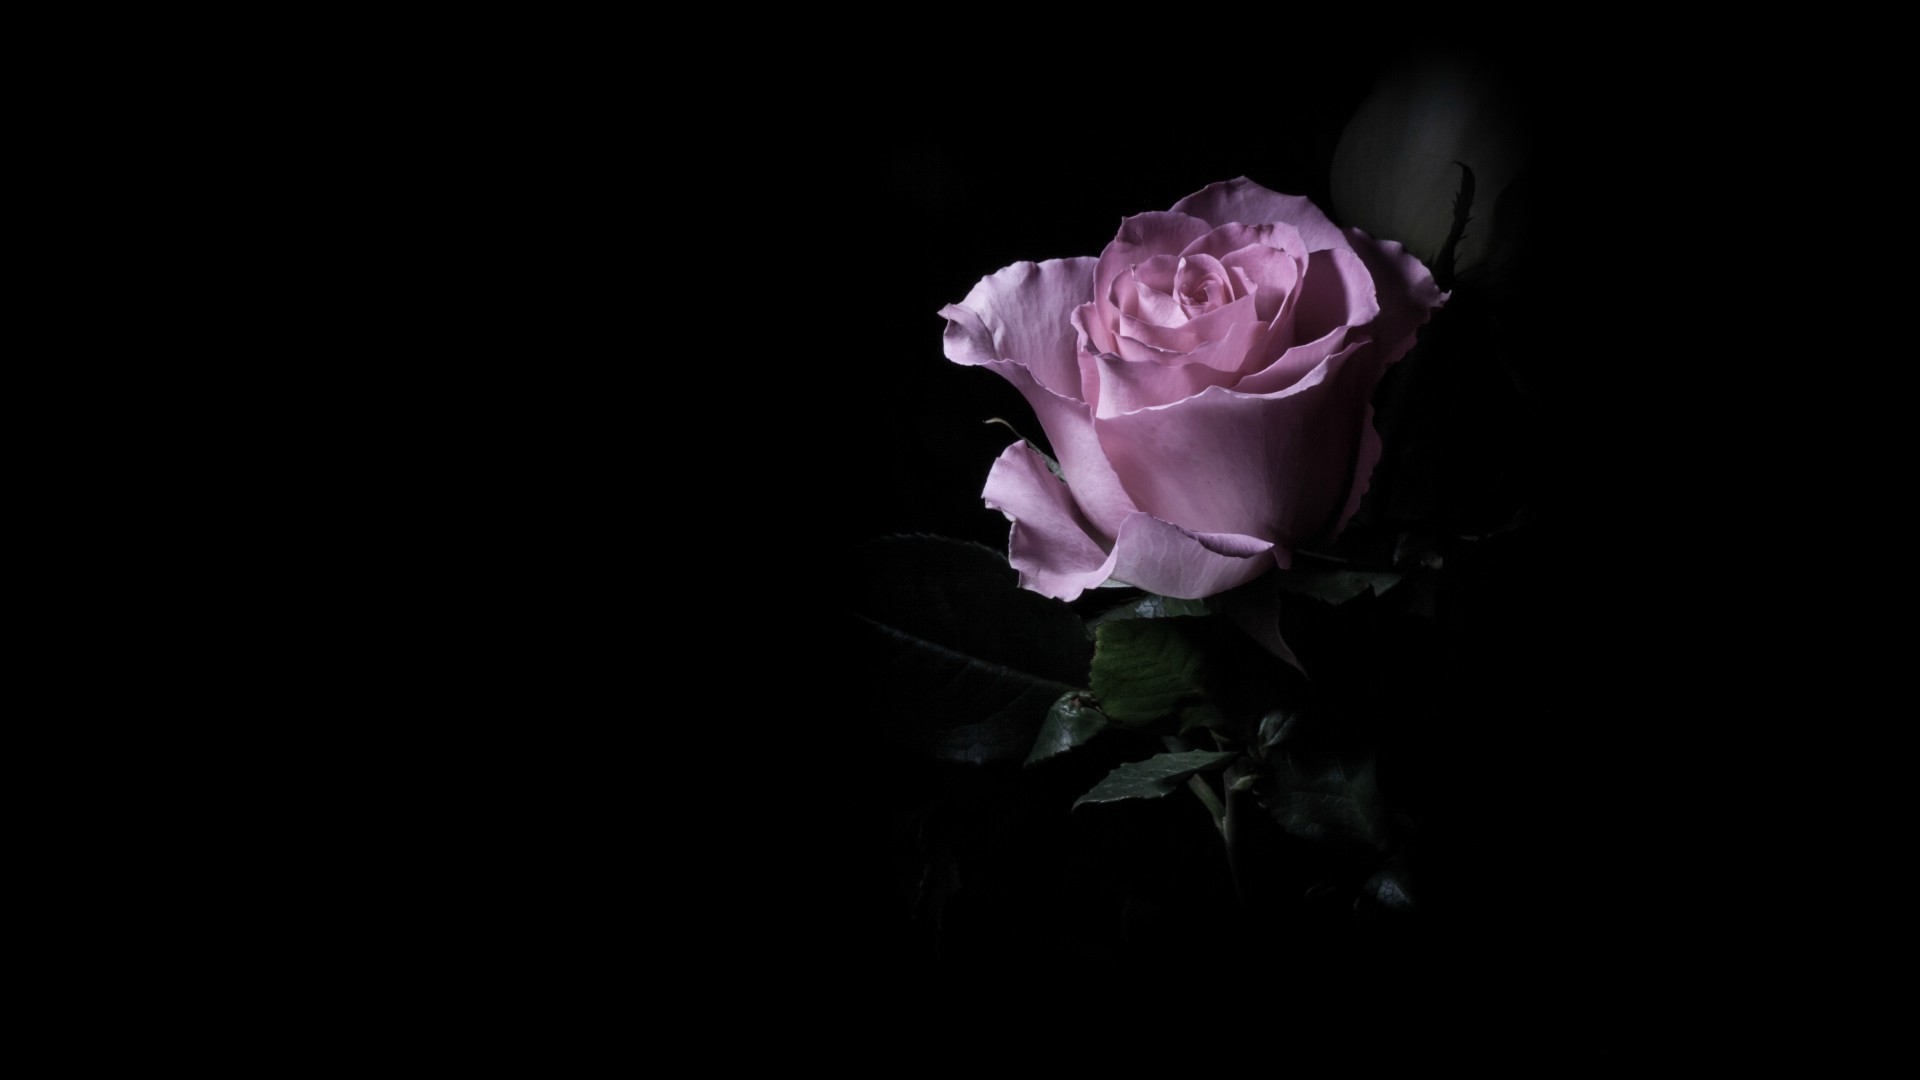 Purple rose in the dark wallpapers and images   wallpapers pictures 1920x1080